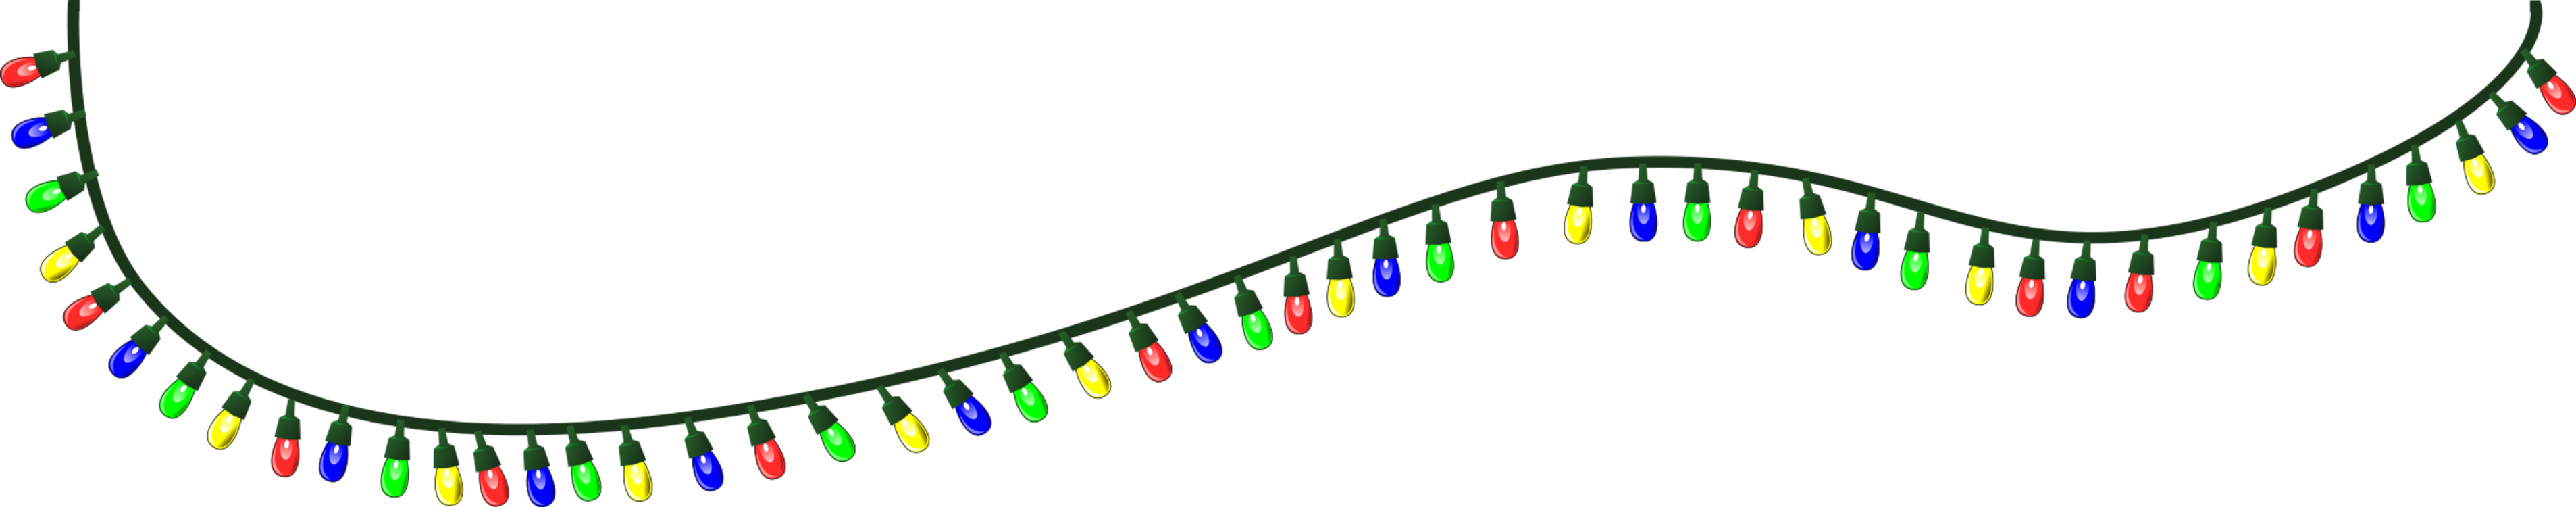 all photo png clipart christmas lights lighting holiday